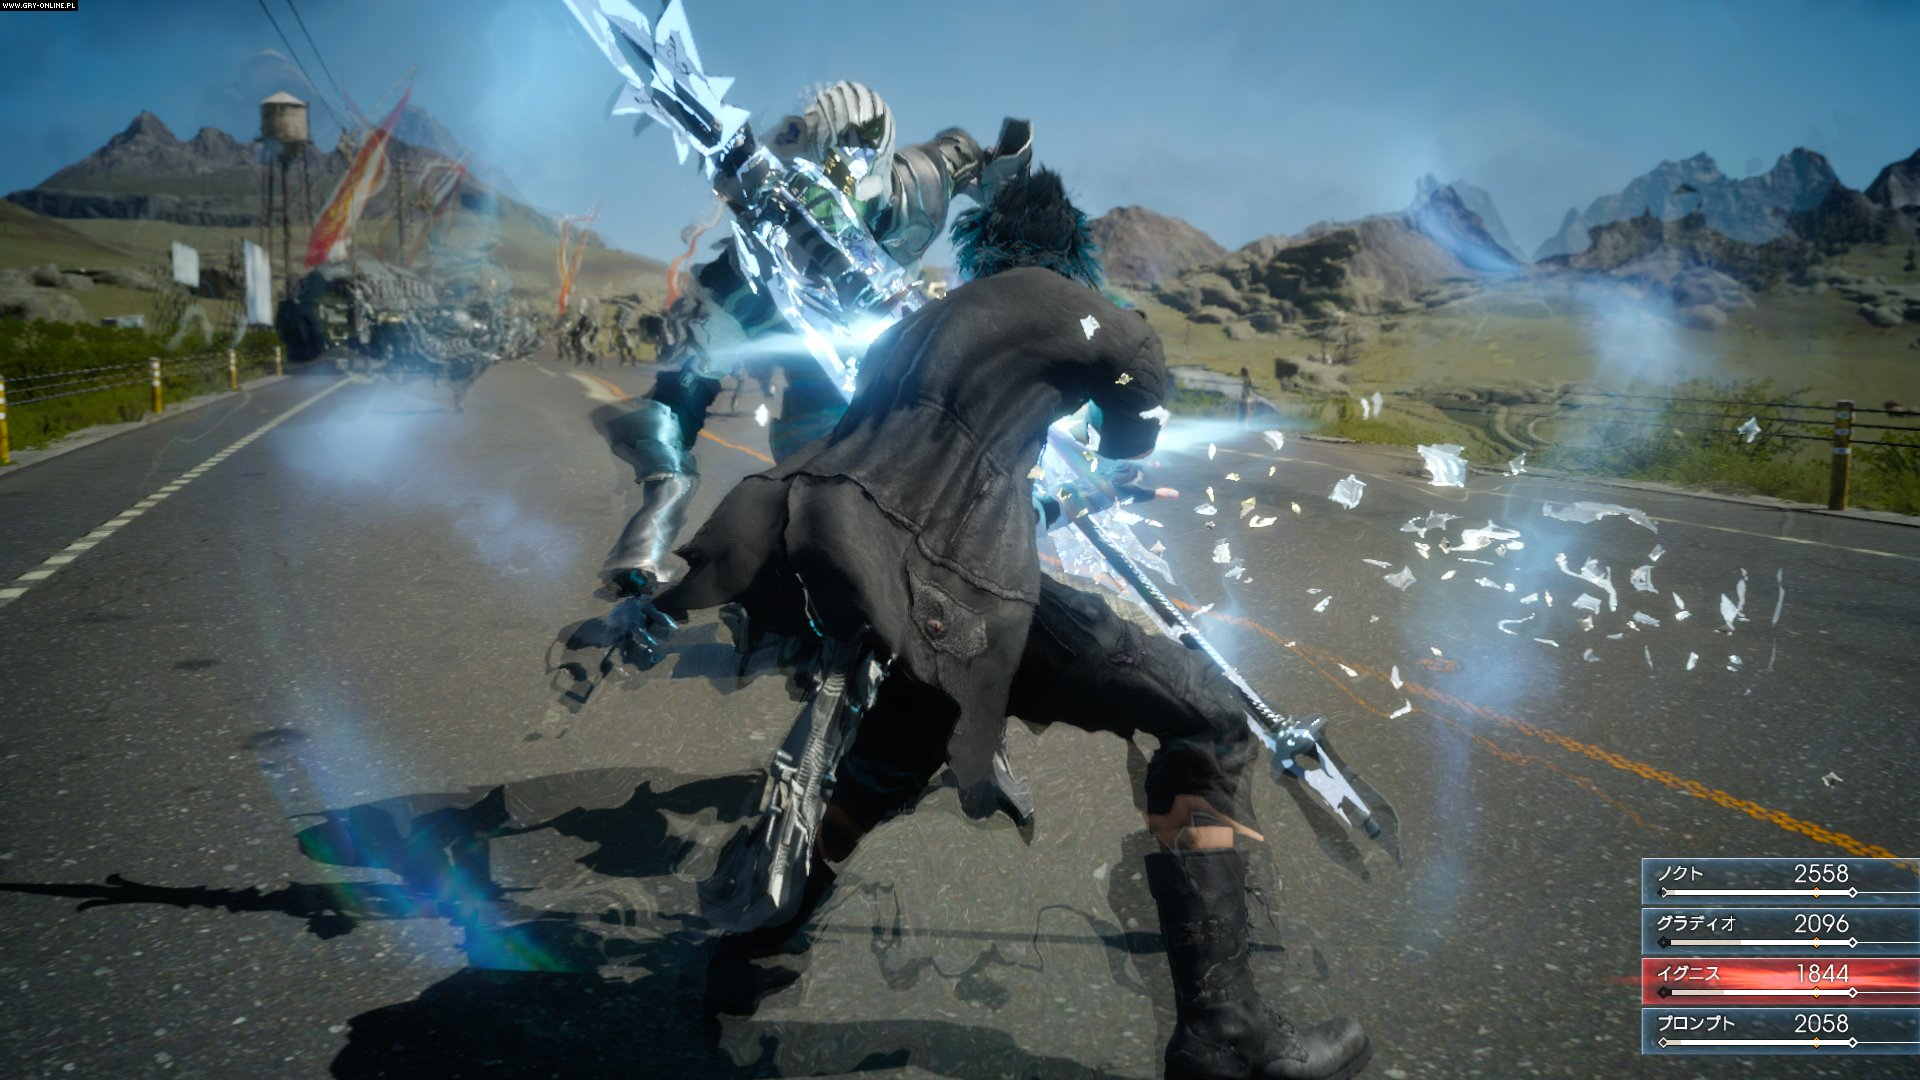 Final Fantasy XV PS4, XONE Gry Screen 163/393, Square-Enix / Eidos